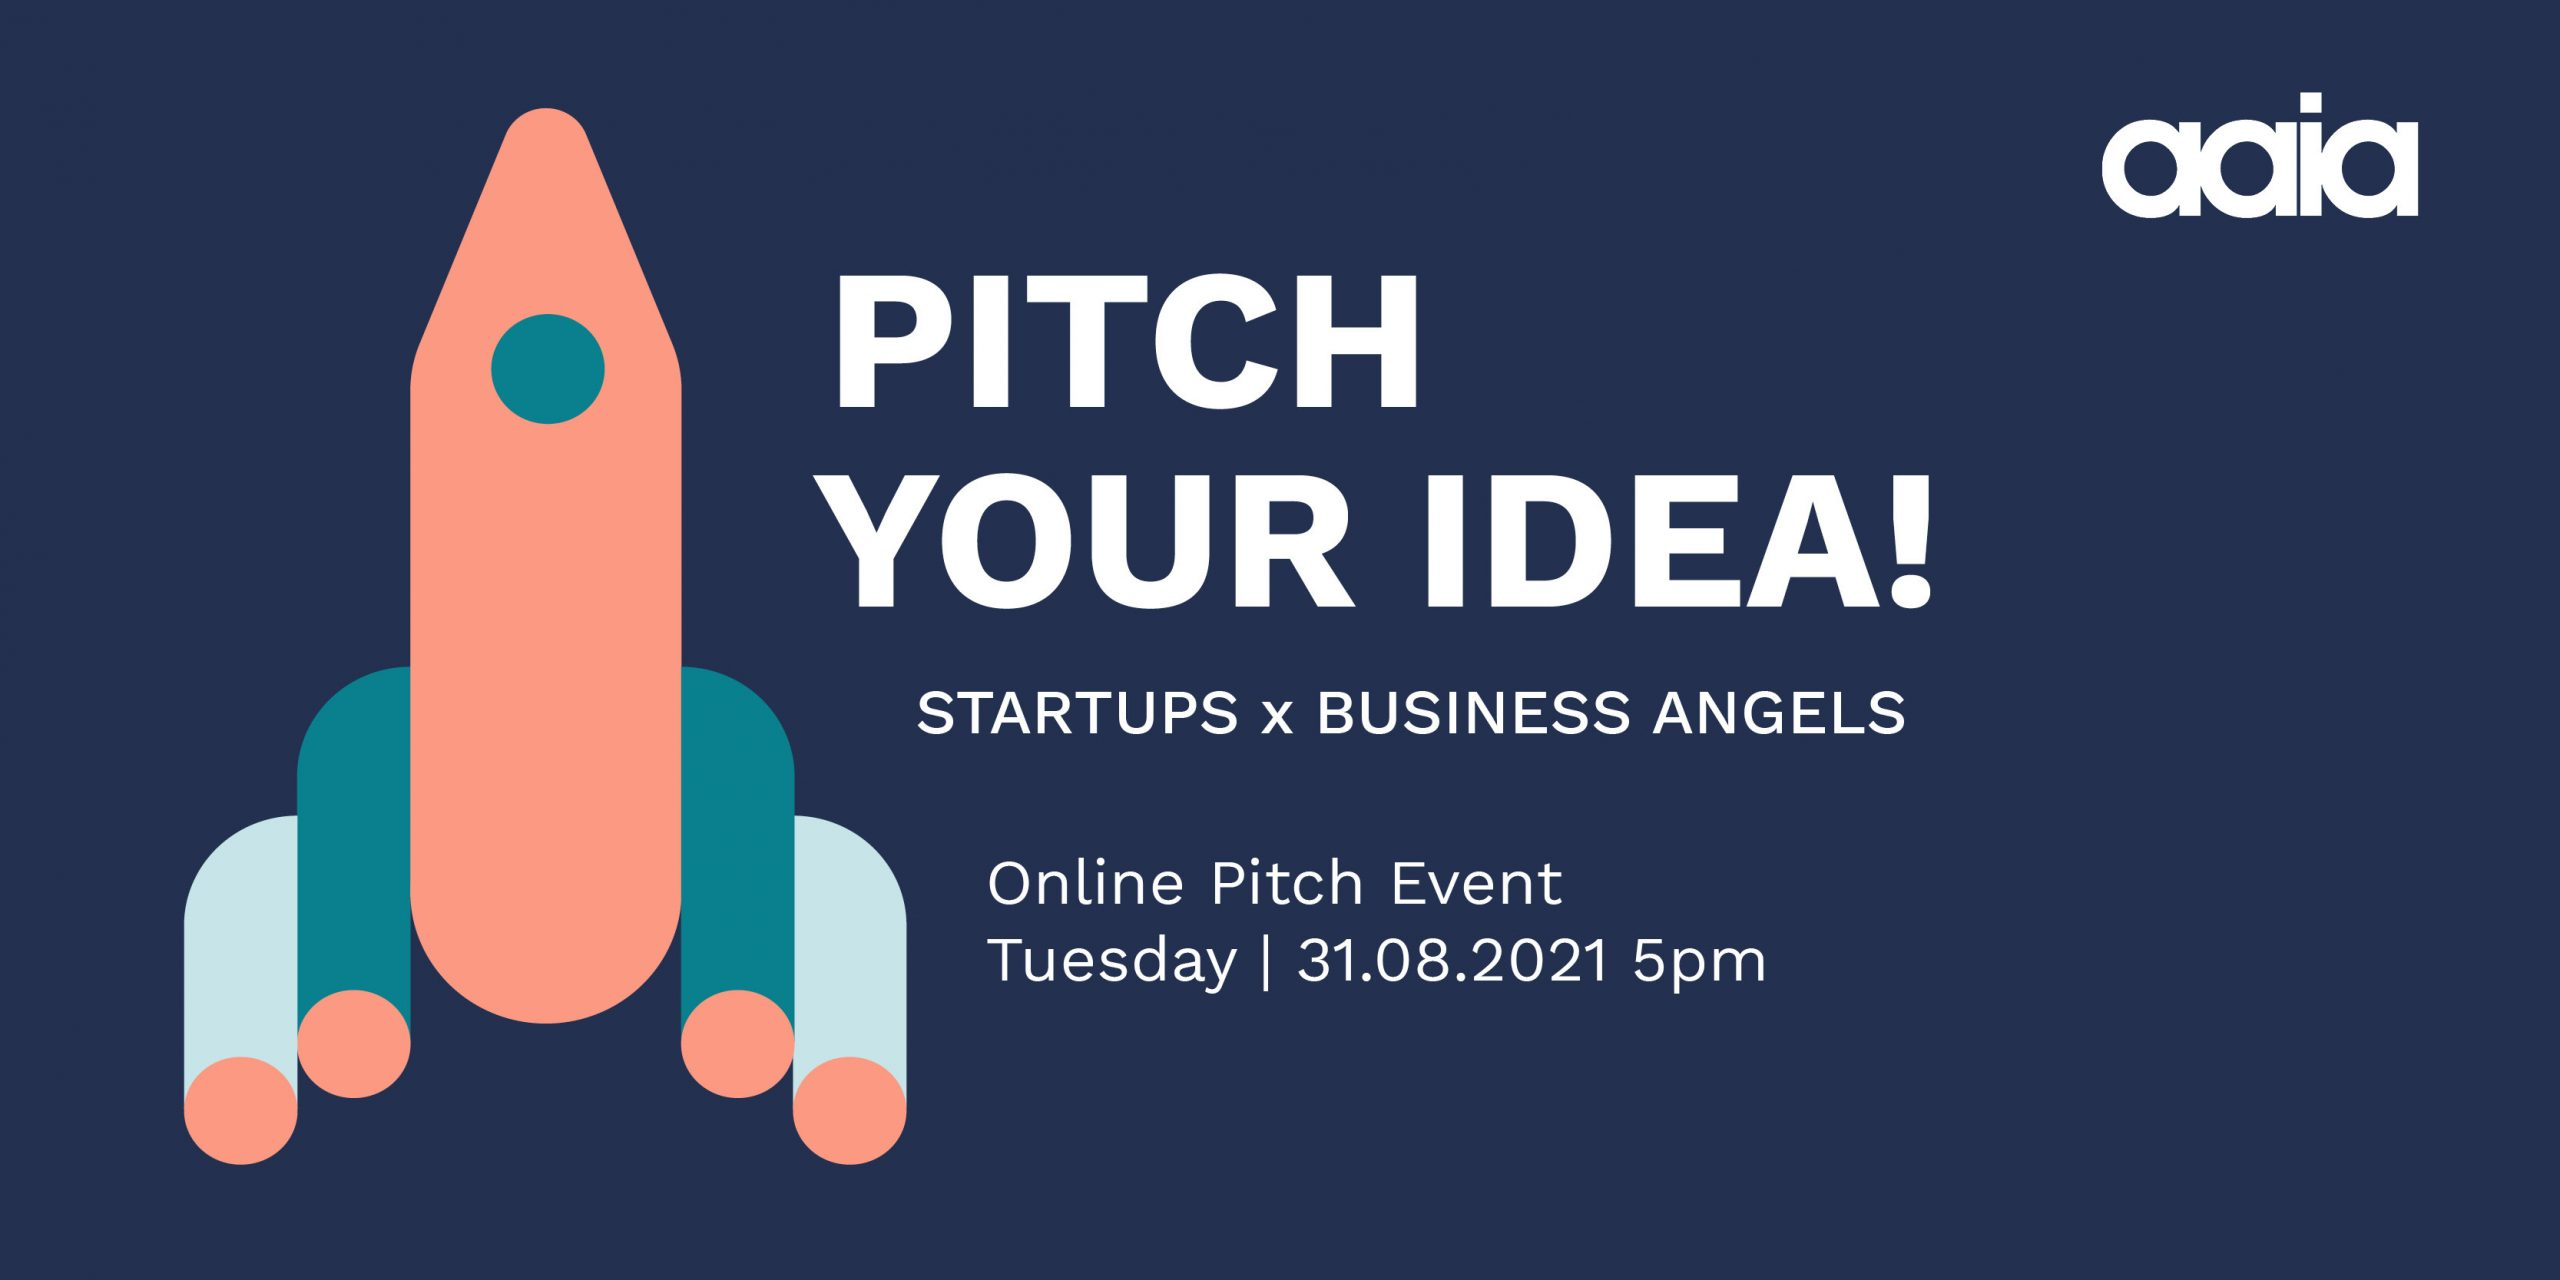 Startups_Business Angels_31.08.2021_5pm